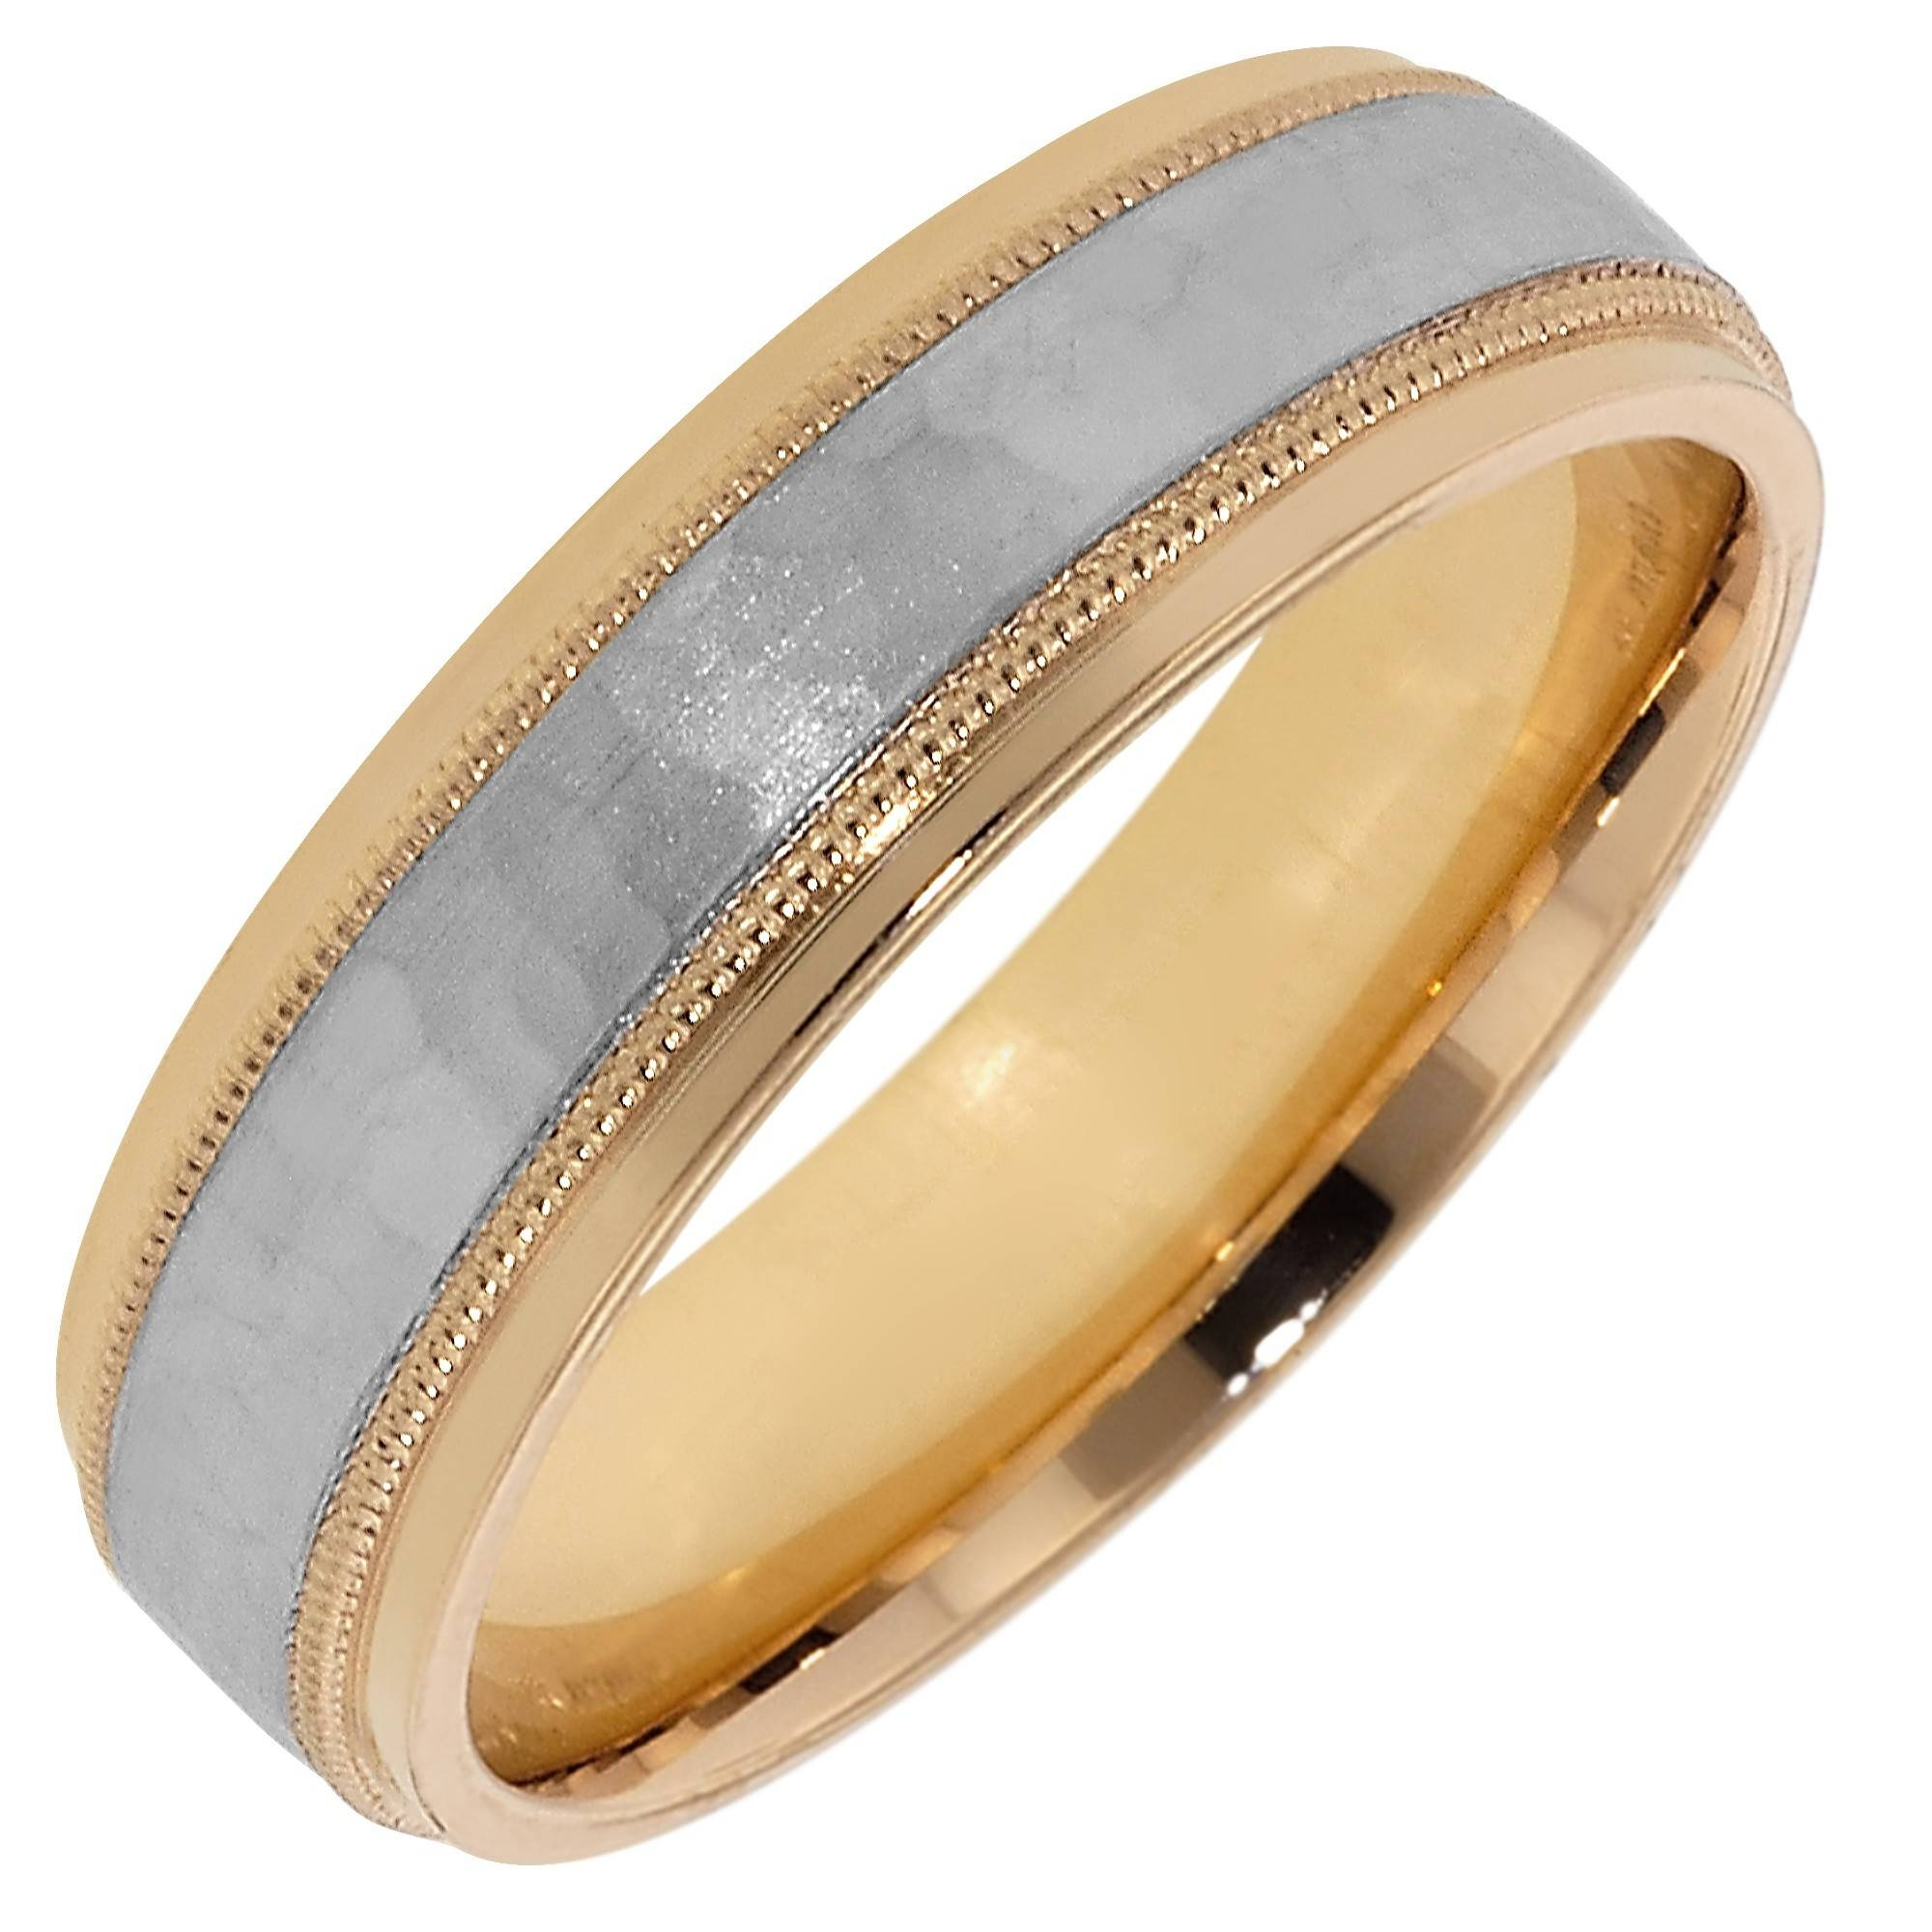 Artcarved Mens Hammered Wedding Band In 14Kt Yellow Gold And White Intended For Artcarved Men Wedding Bands (Gallery 13 of 15)